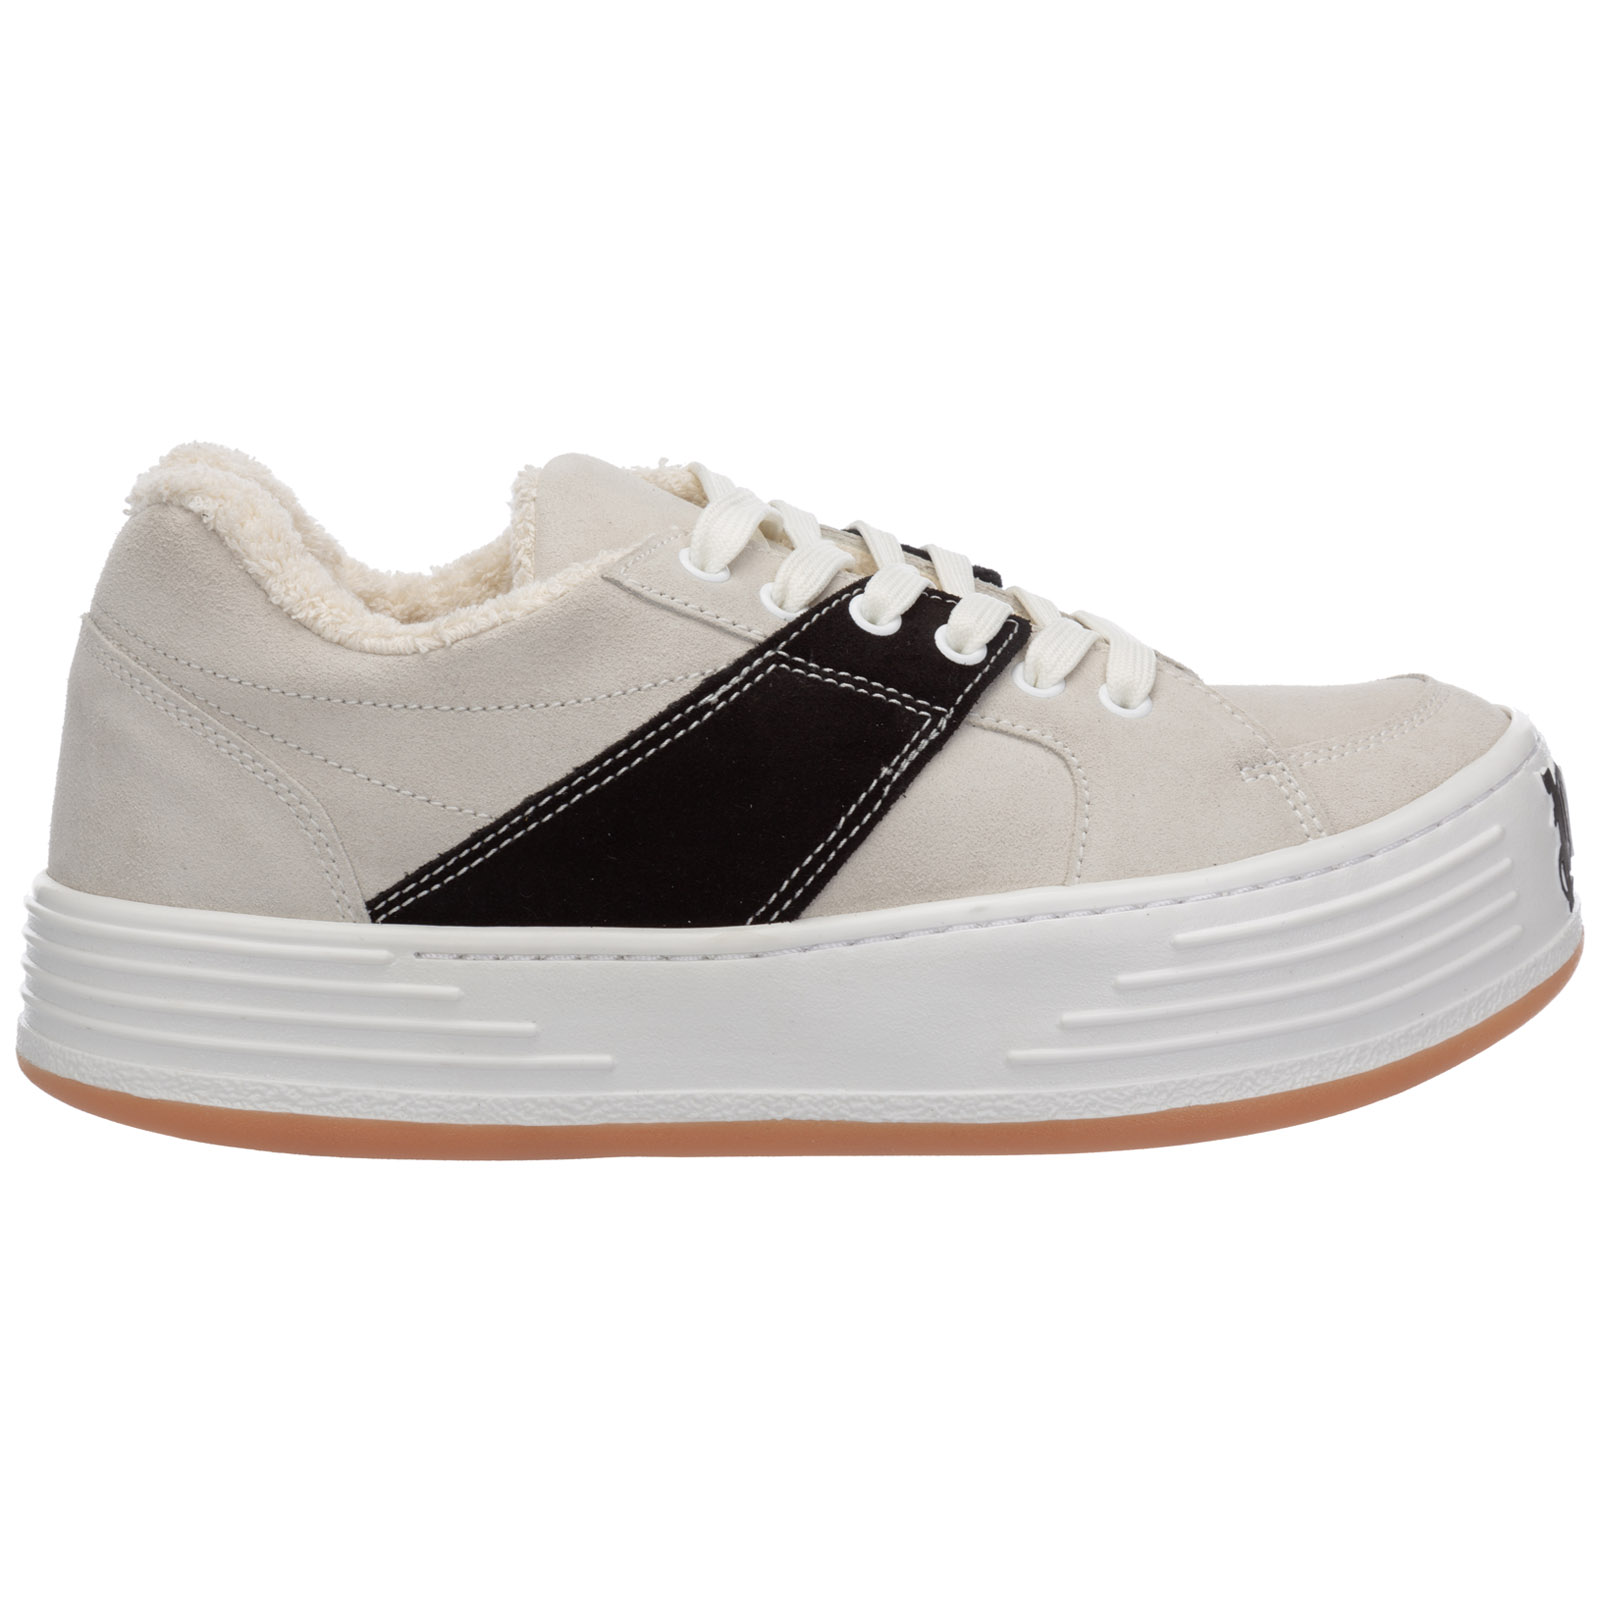 Palm Angels MEN'S SHOES SUEDE TRAINERS SNEAKERS SNOW